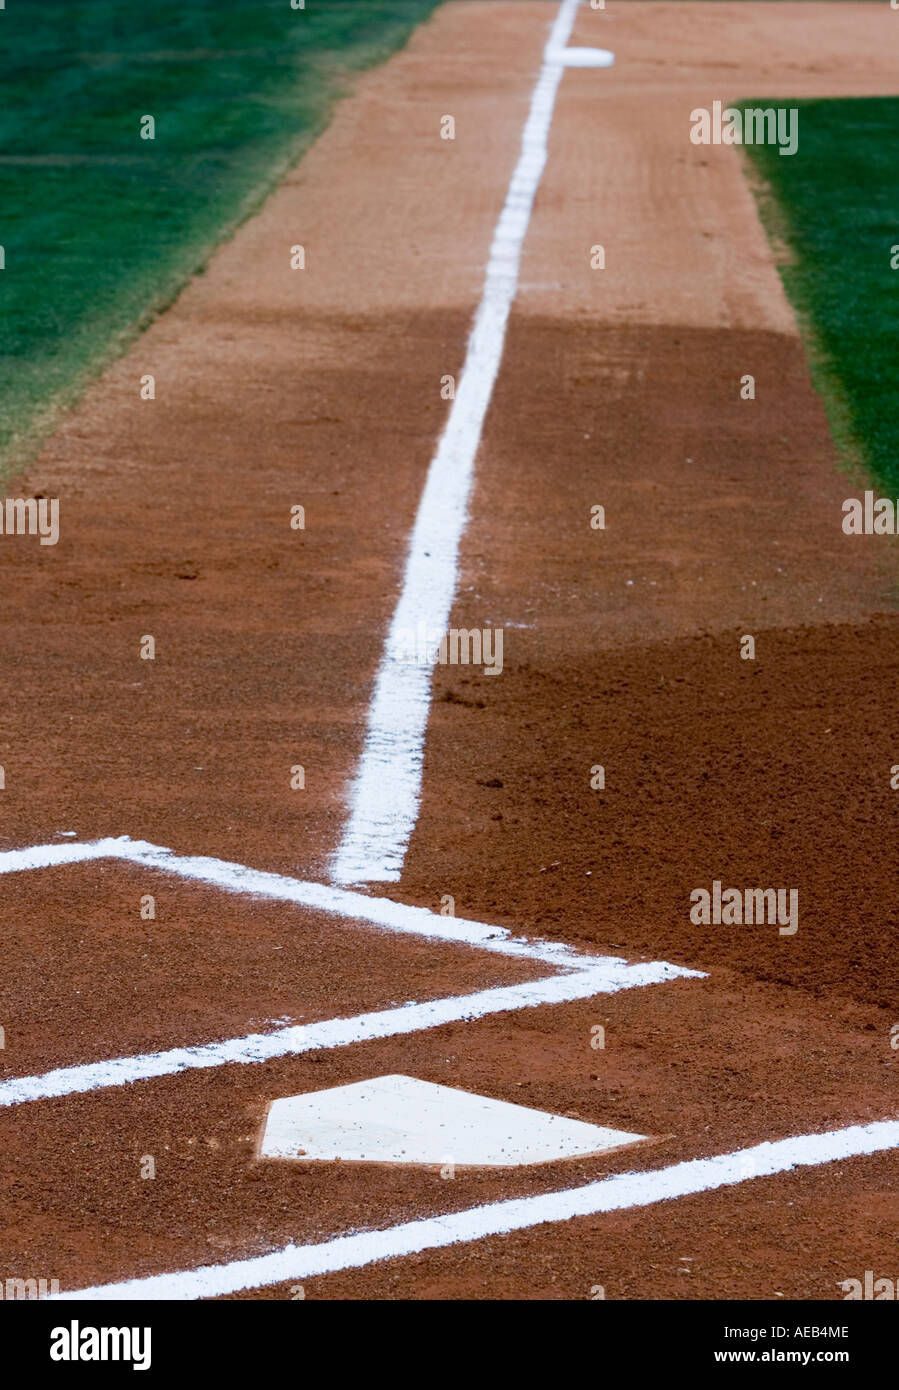 home plate and foul line stock photo royalty free image 7787085